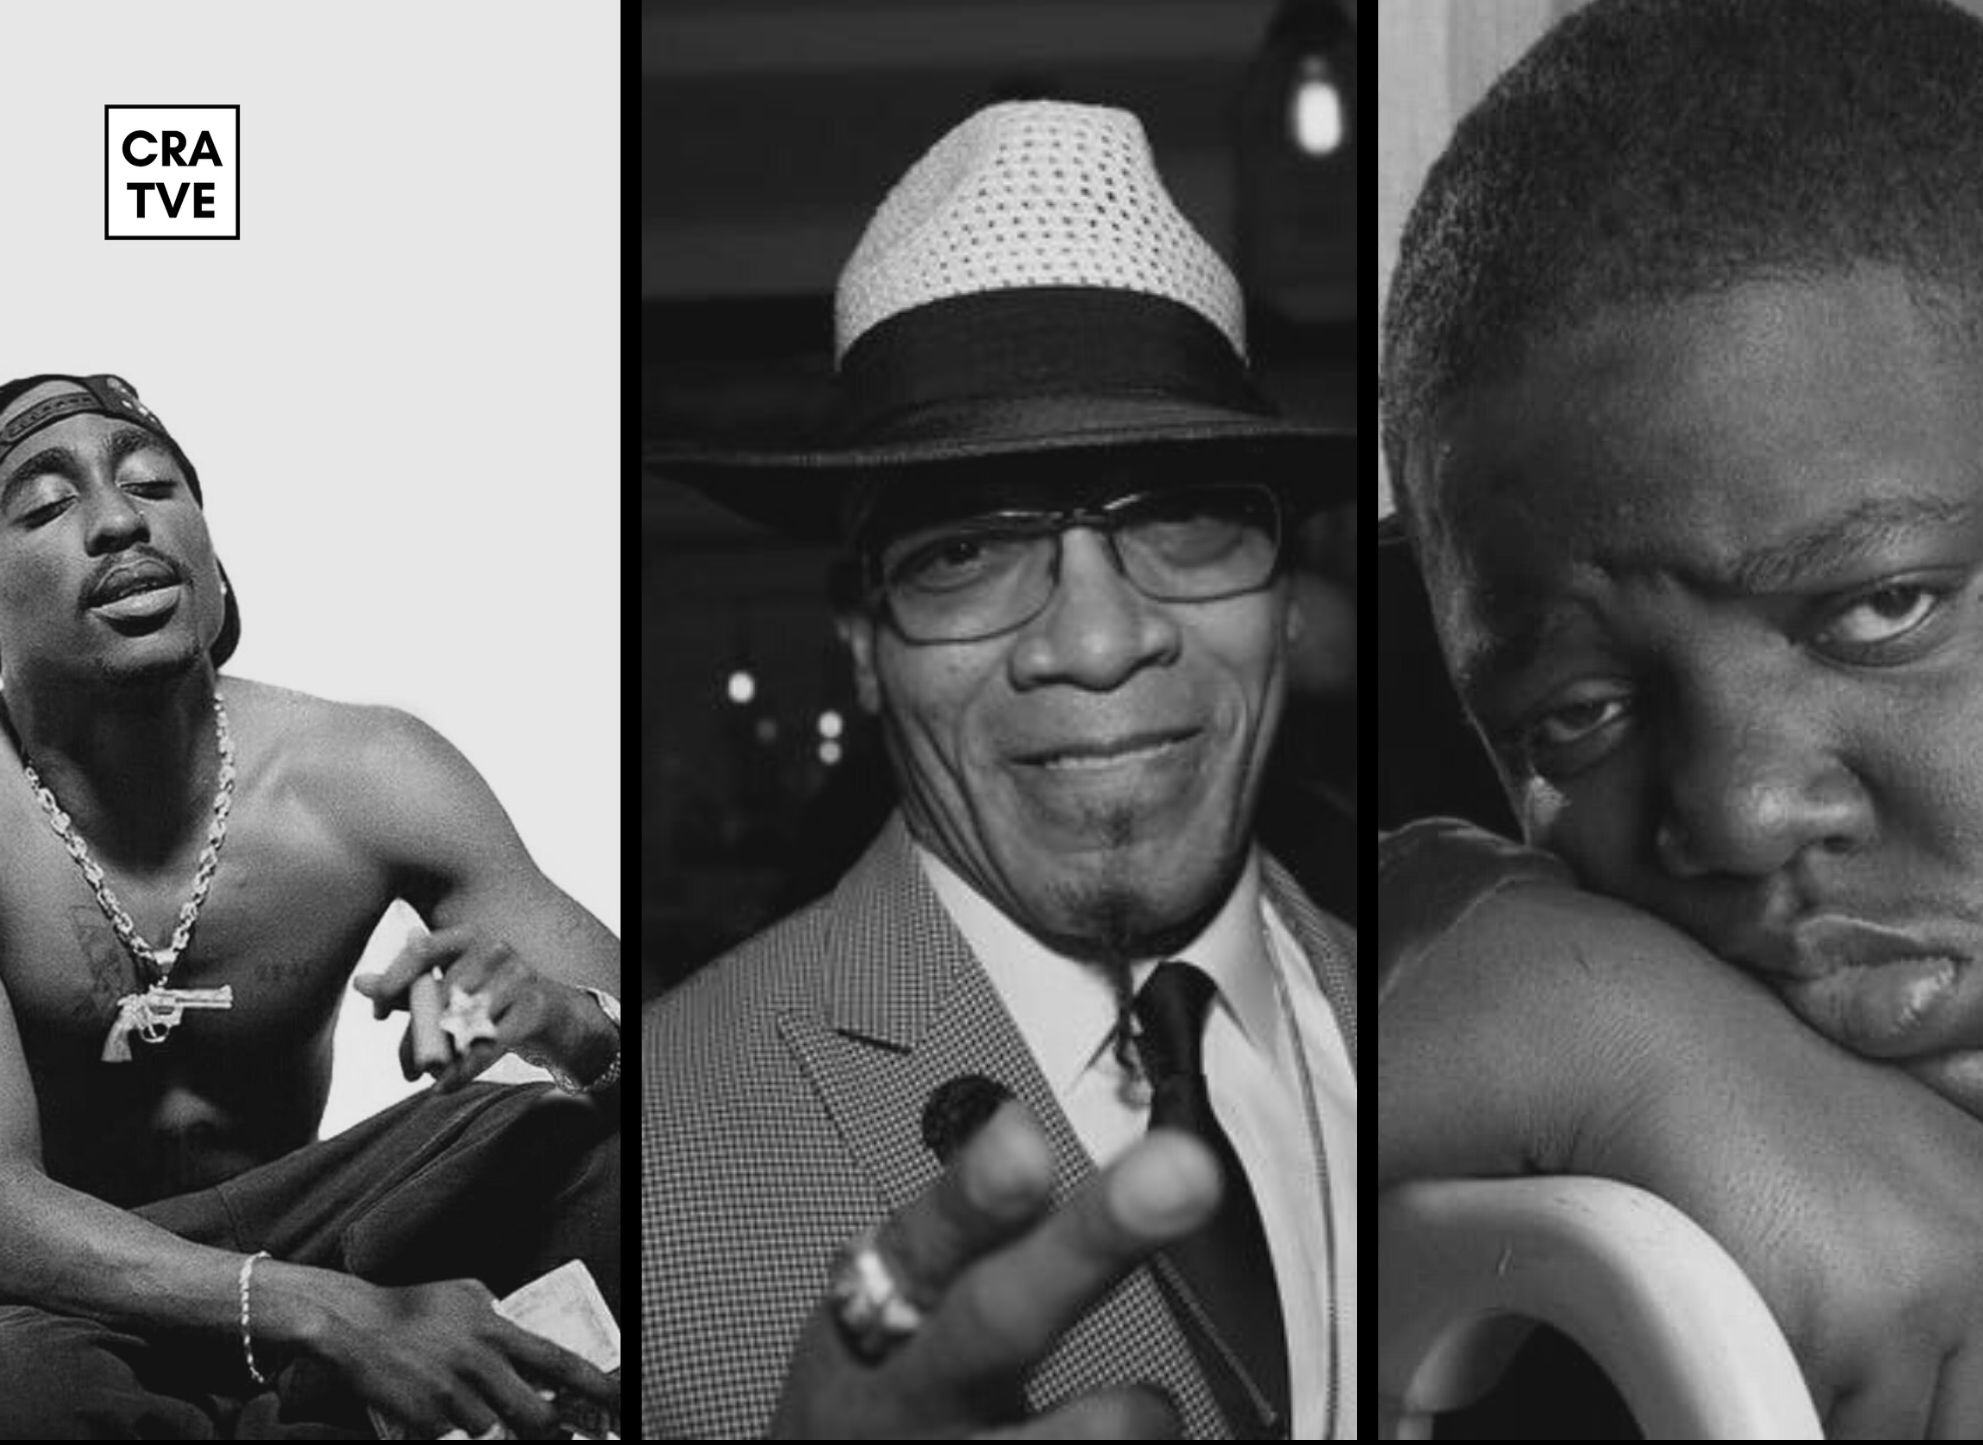 Melle Mel says Biggie didn't influence or impact hip hop like Tupac did